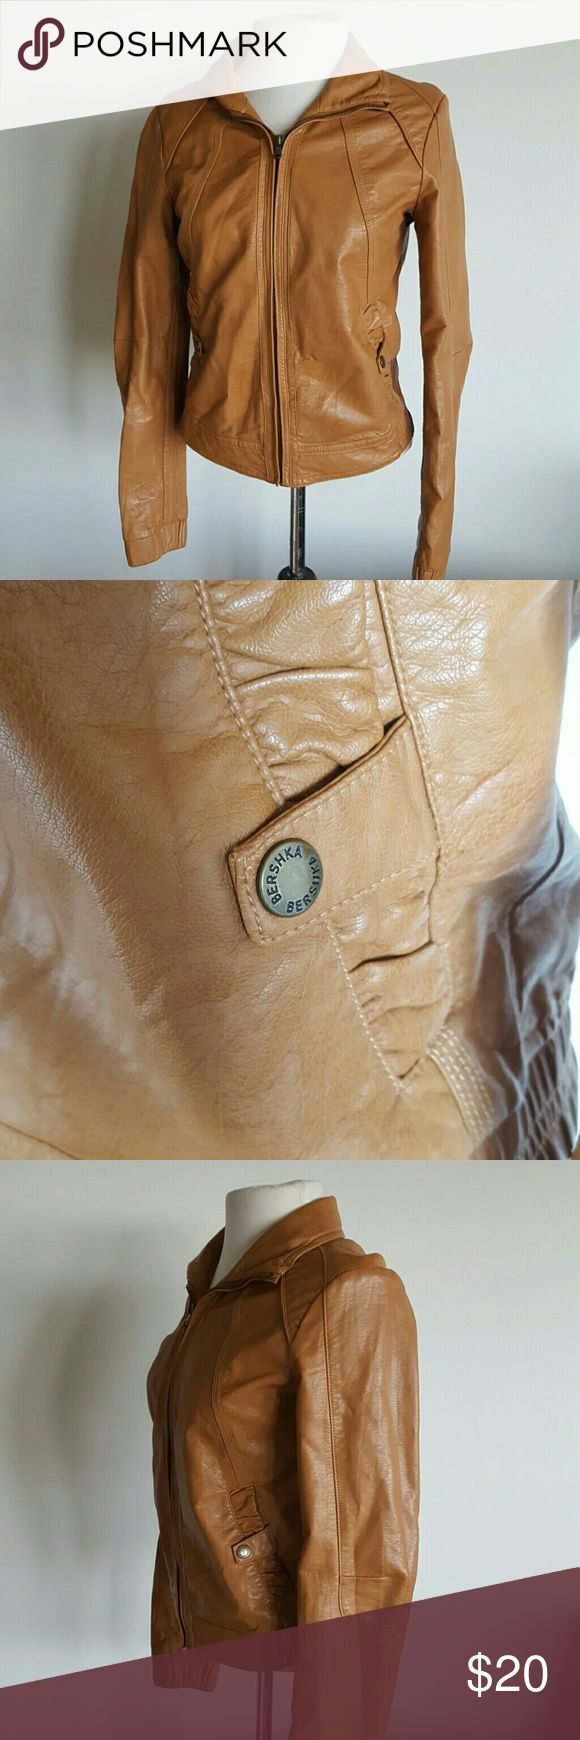 Camel colored members only style women's jacket Great jacket zip up, 2 button pockets , no years or rips. Size medium women's. Members only style. Urban Outfitters Jackets & Coats